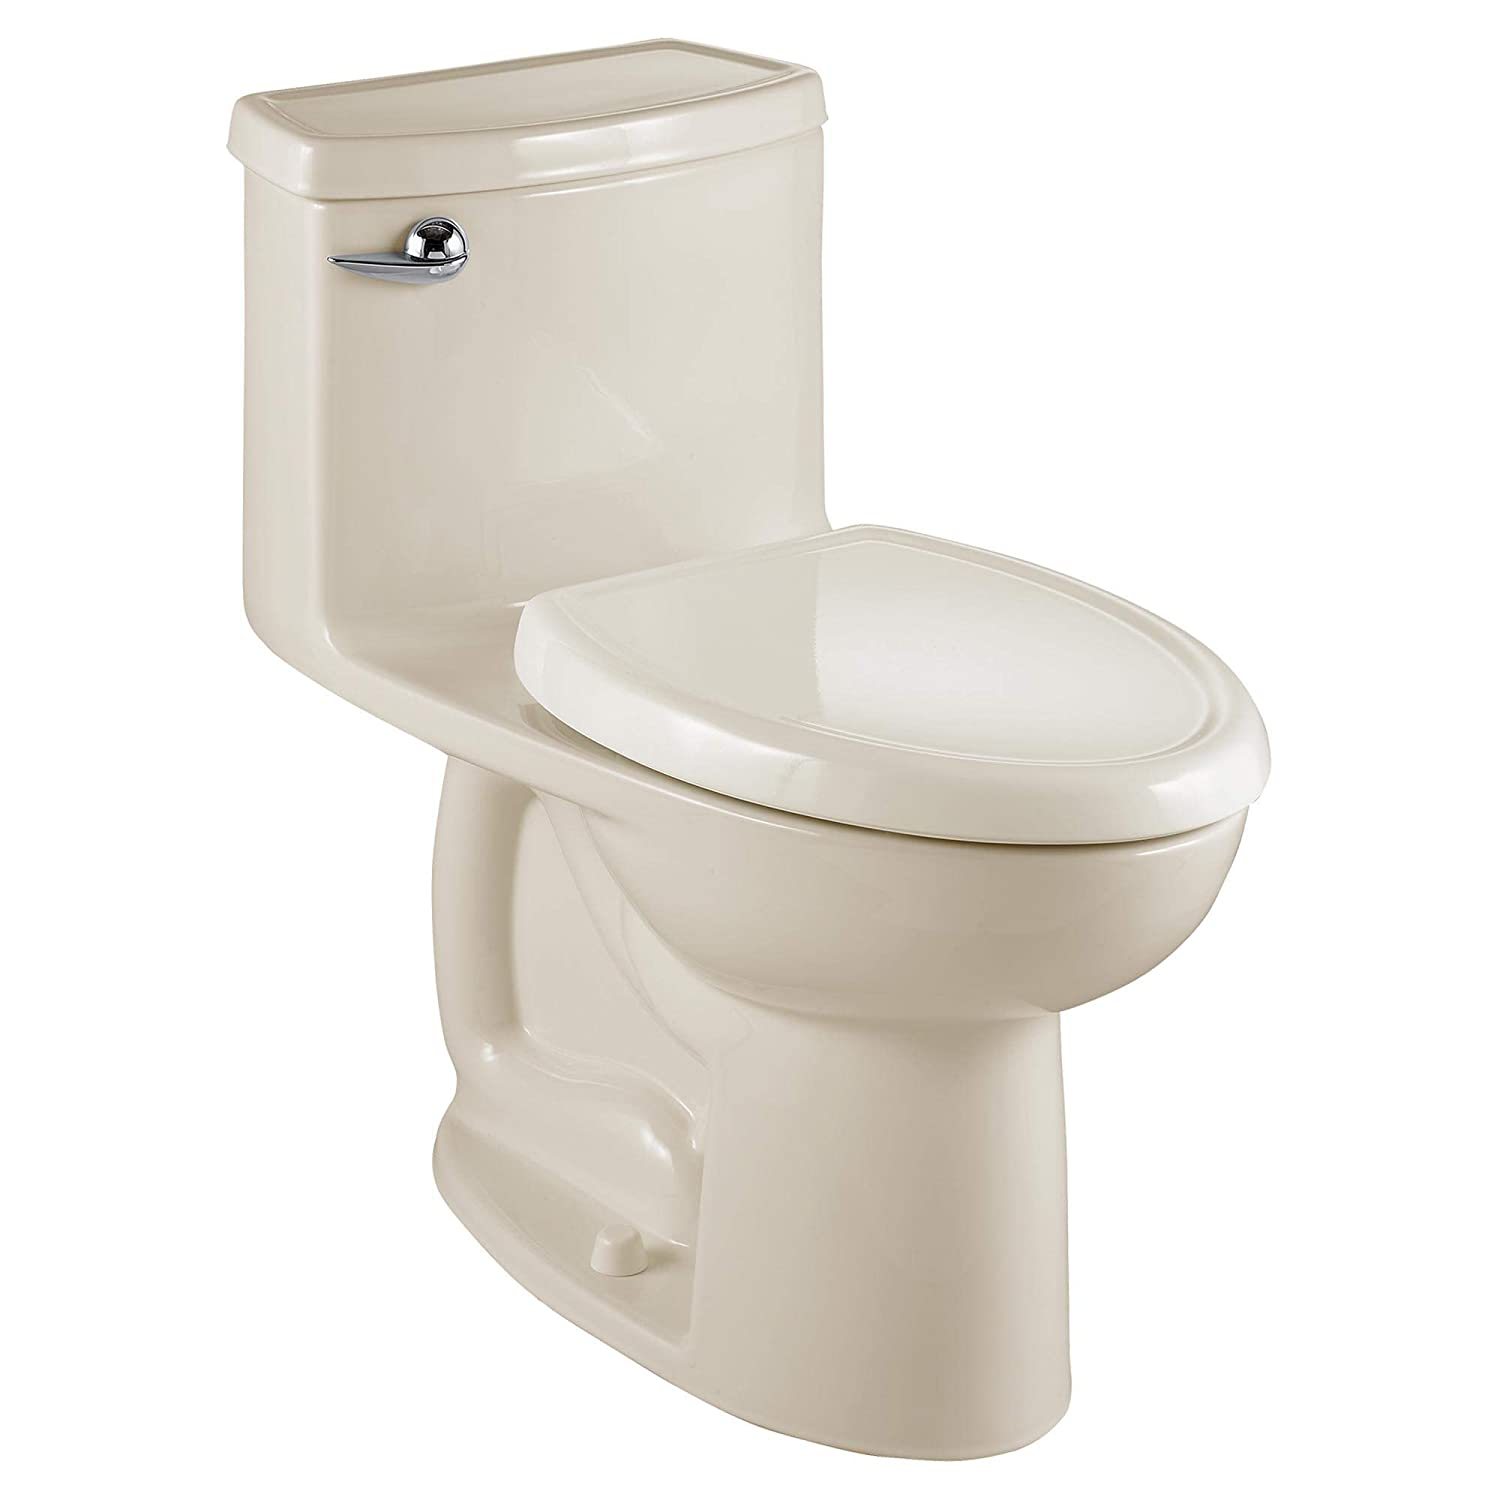 American Standard 2403128.222 Compact Cadet 3 FloWise One-Piece Elongated Toilet, 1.28 gpf, Linen